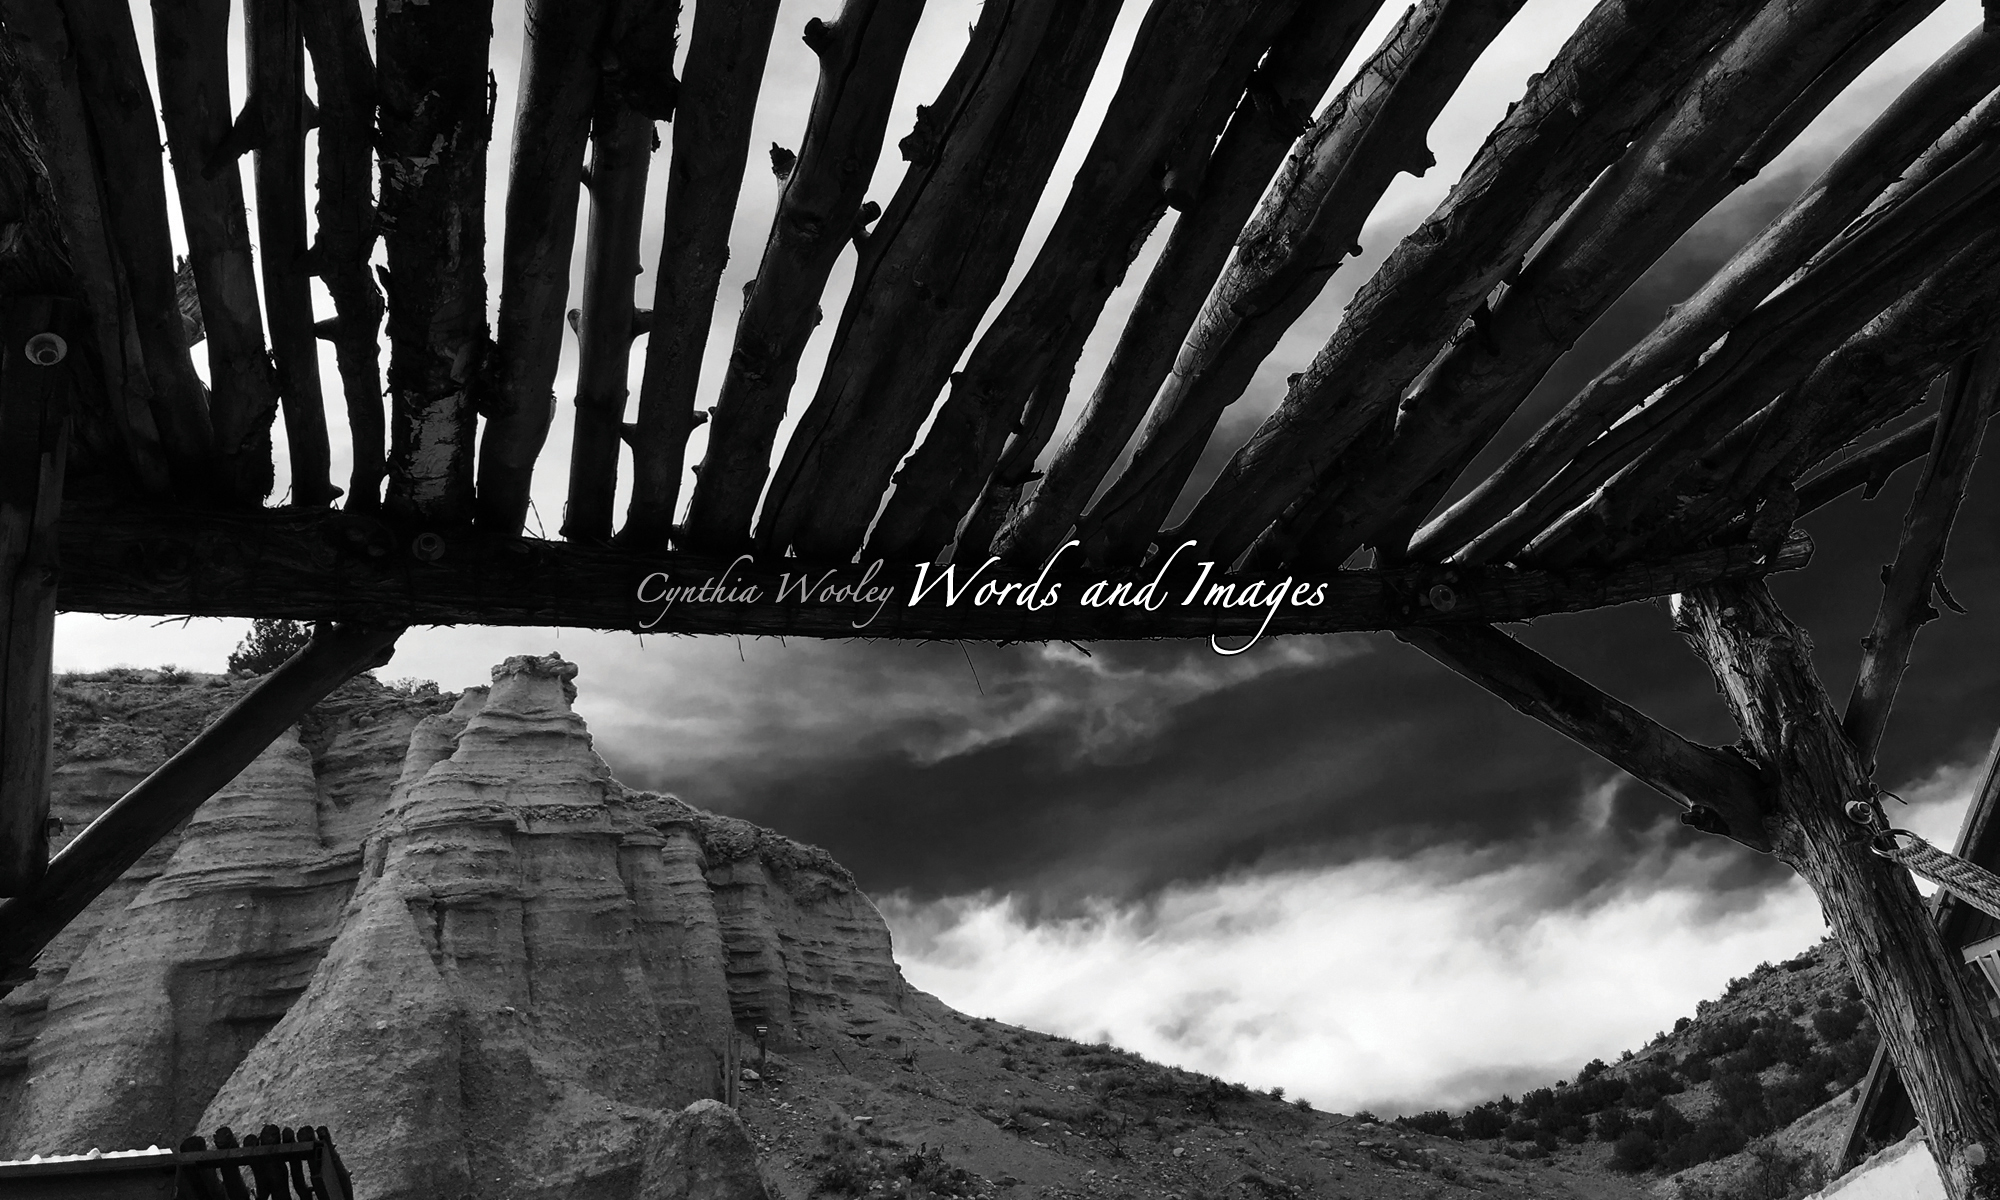 Cynthia Wooley - Words and Images